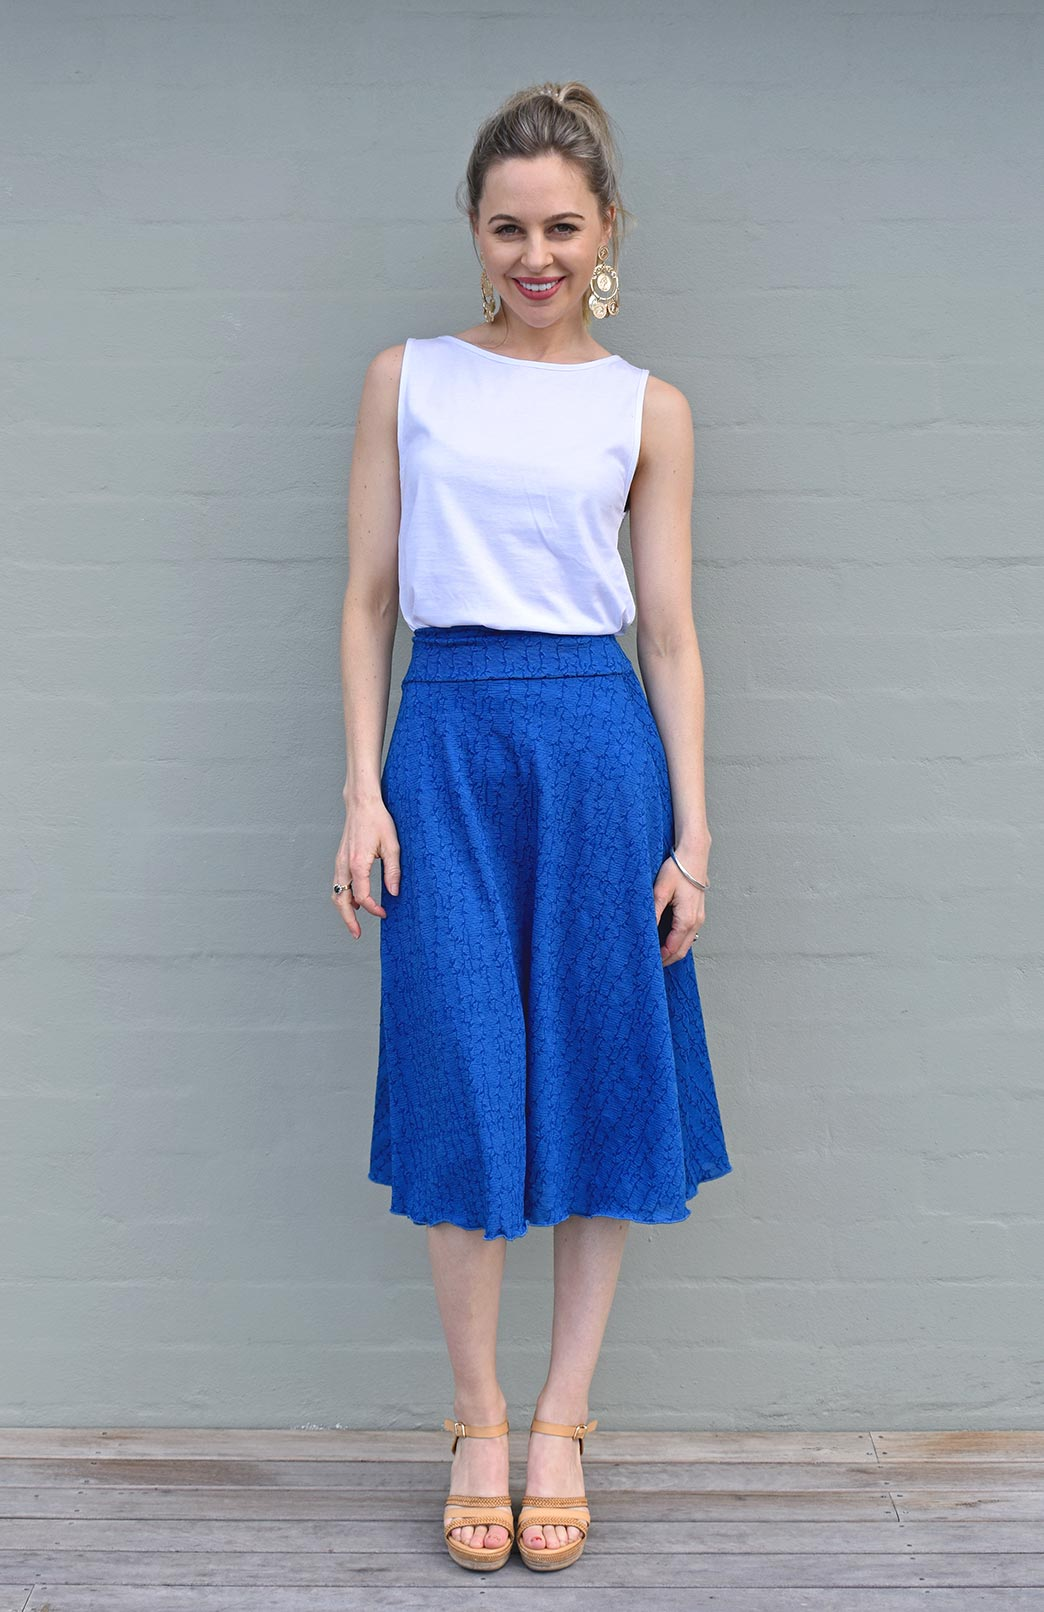 Twirl Skirt - Women's Azure Blue Patterned A-Line Swing Wool Skirt - Smitten Merino Tasmania Australia